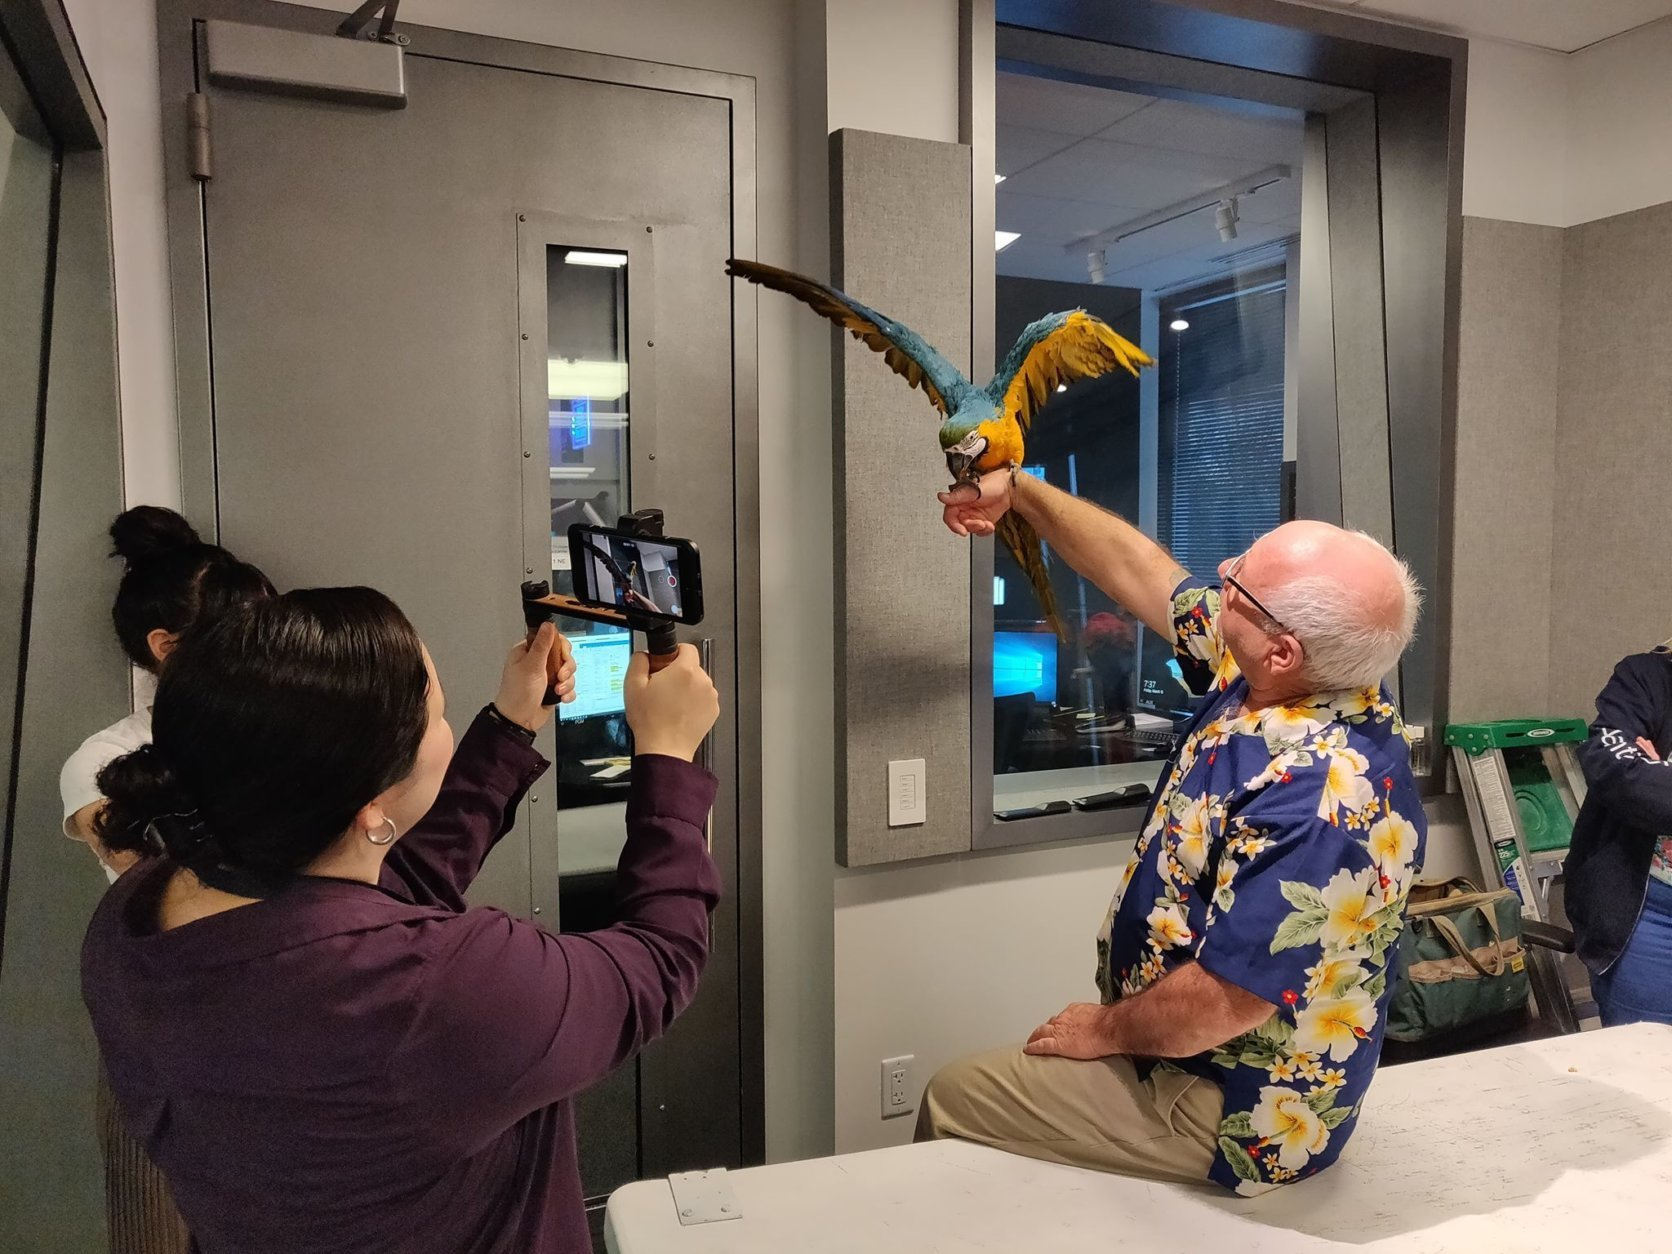 Polly the parrot flaps her wings in Studio B with New Jersey Birdman Bill Middleton while talking with WTOP's Ginger Whitaker and NNahal Amouzadeh. (WTOP/Mike McMearty)